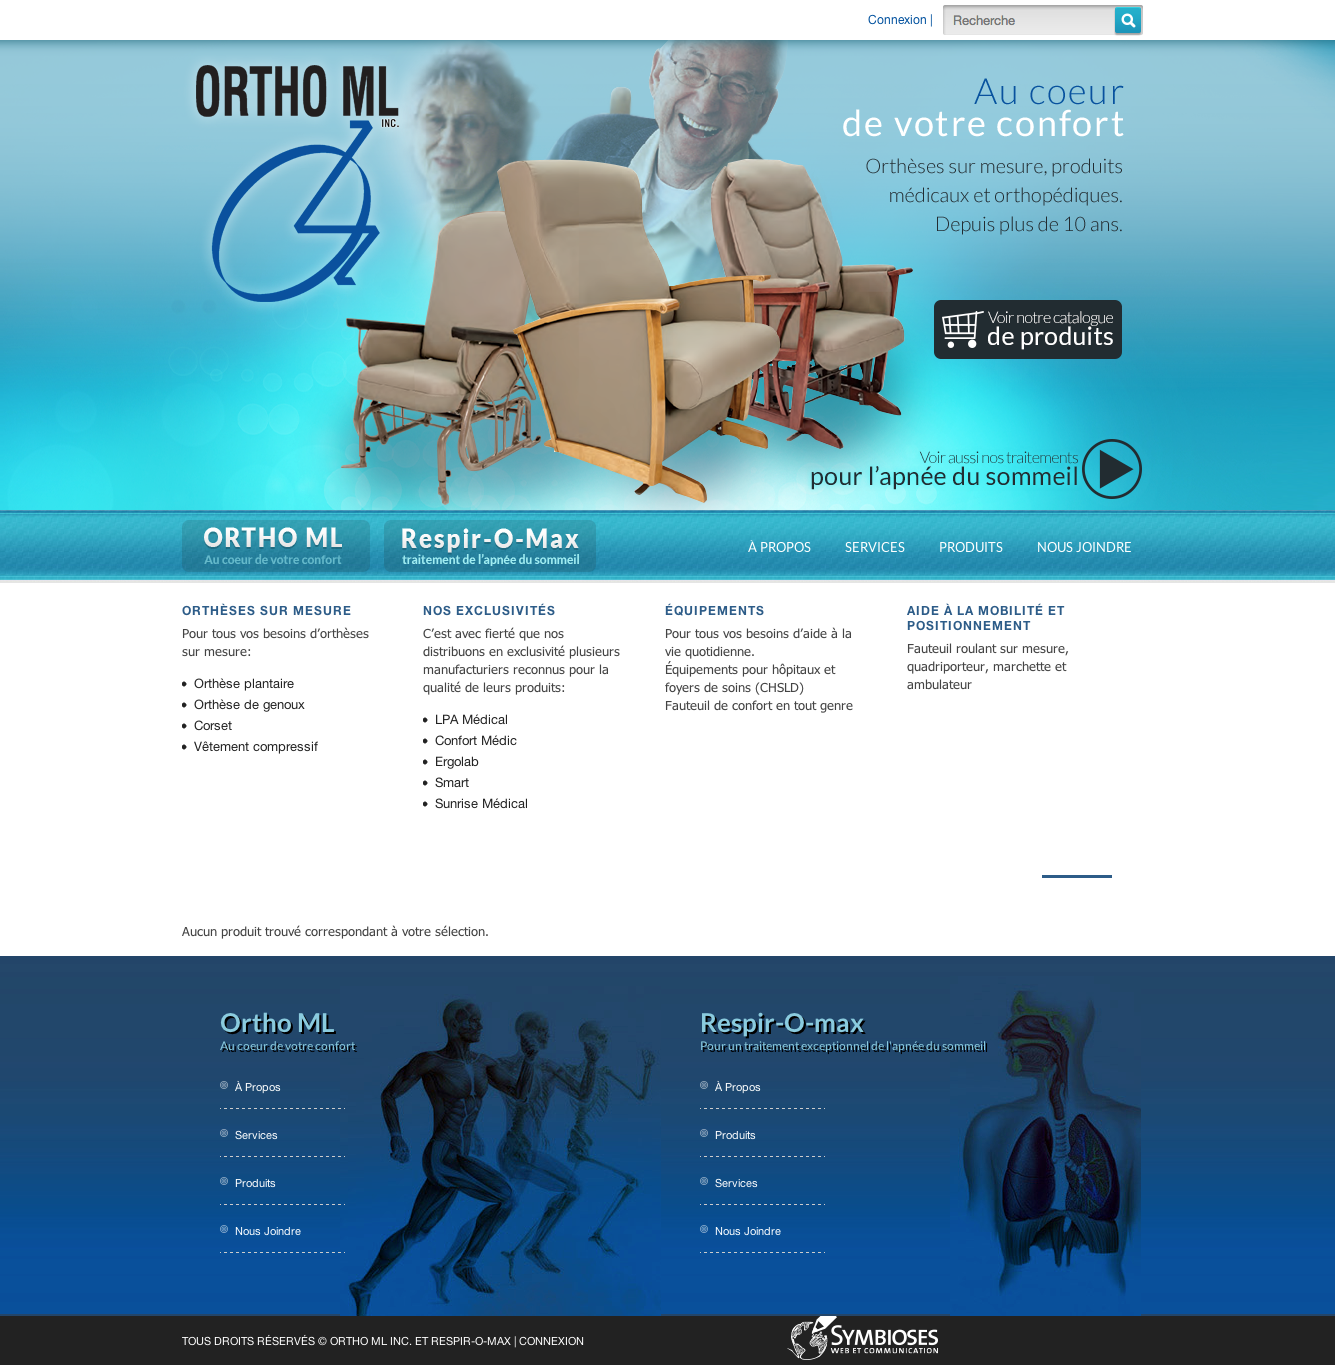 site Web de Ortho ML et Respir-o-max, réalisation du Web simple